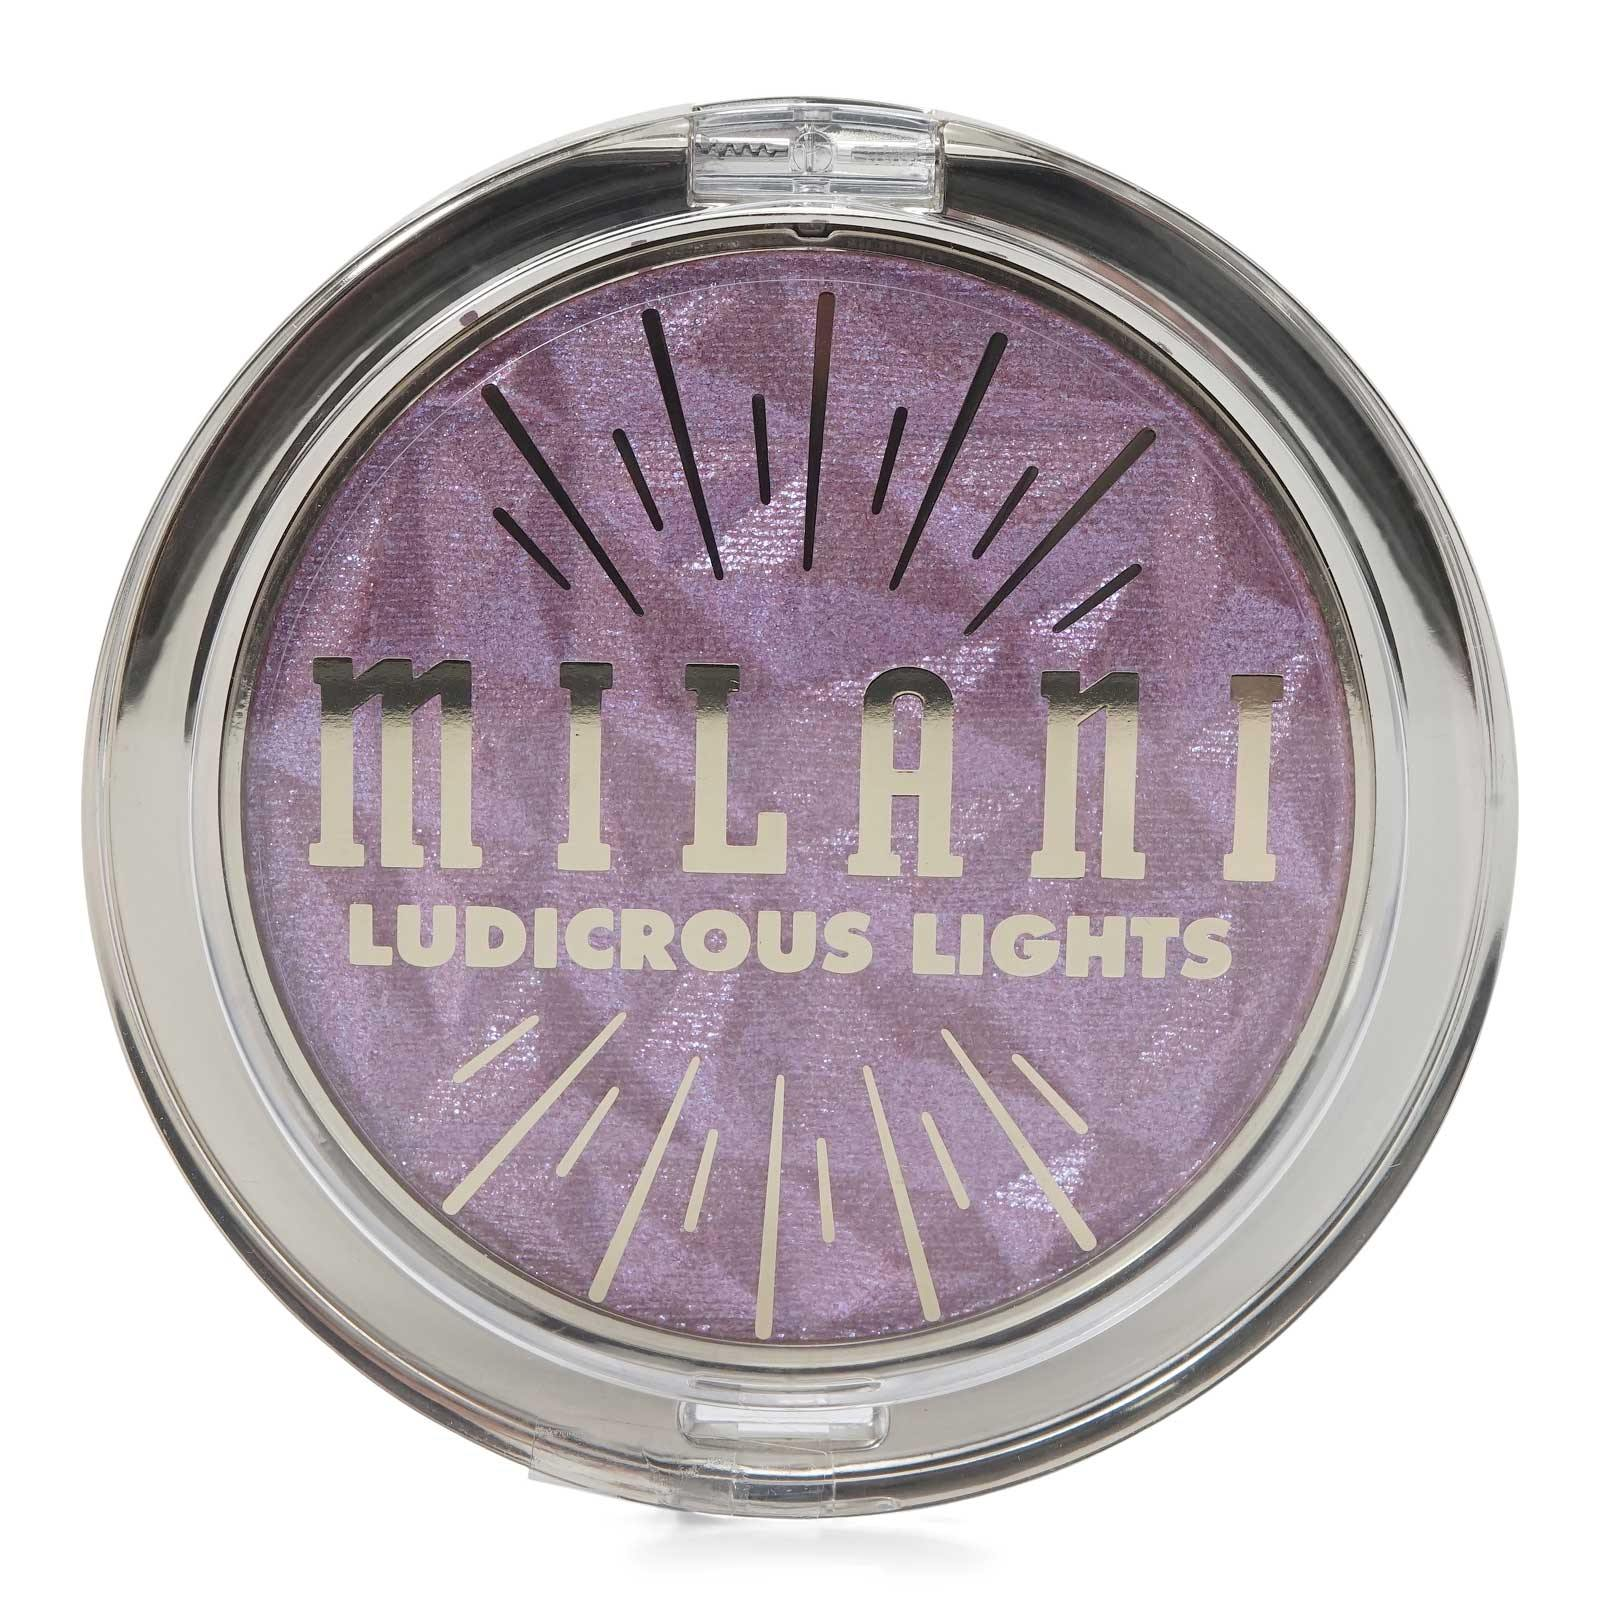 MILANI LUDICROUS LIGHTS CHROME HIGHLIGHTER - PINK A ROO (24/cs)